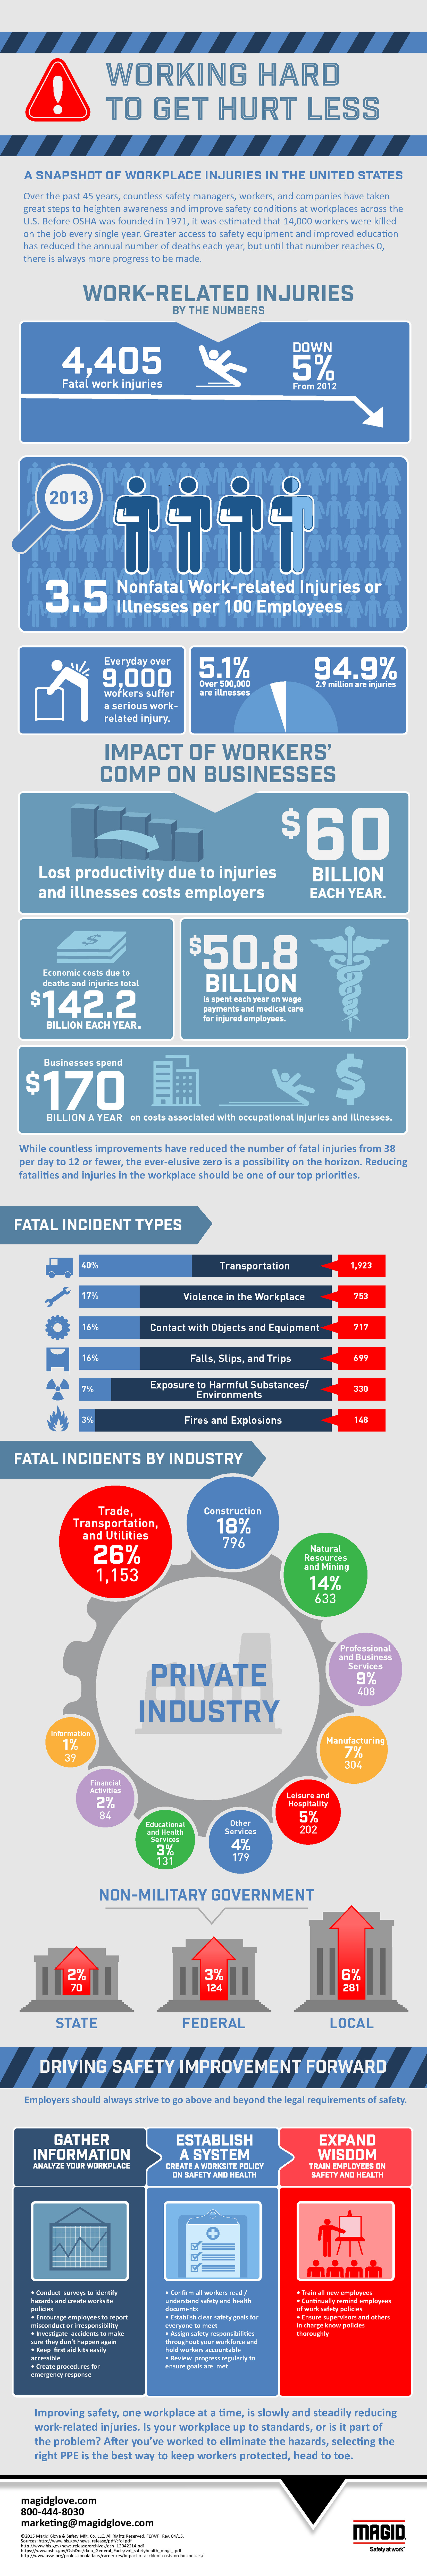 workplace-injuries-infographic